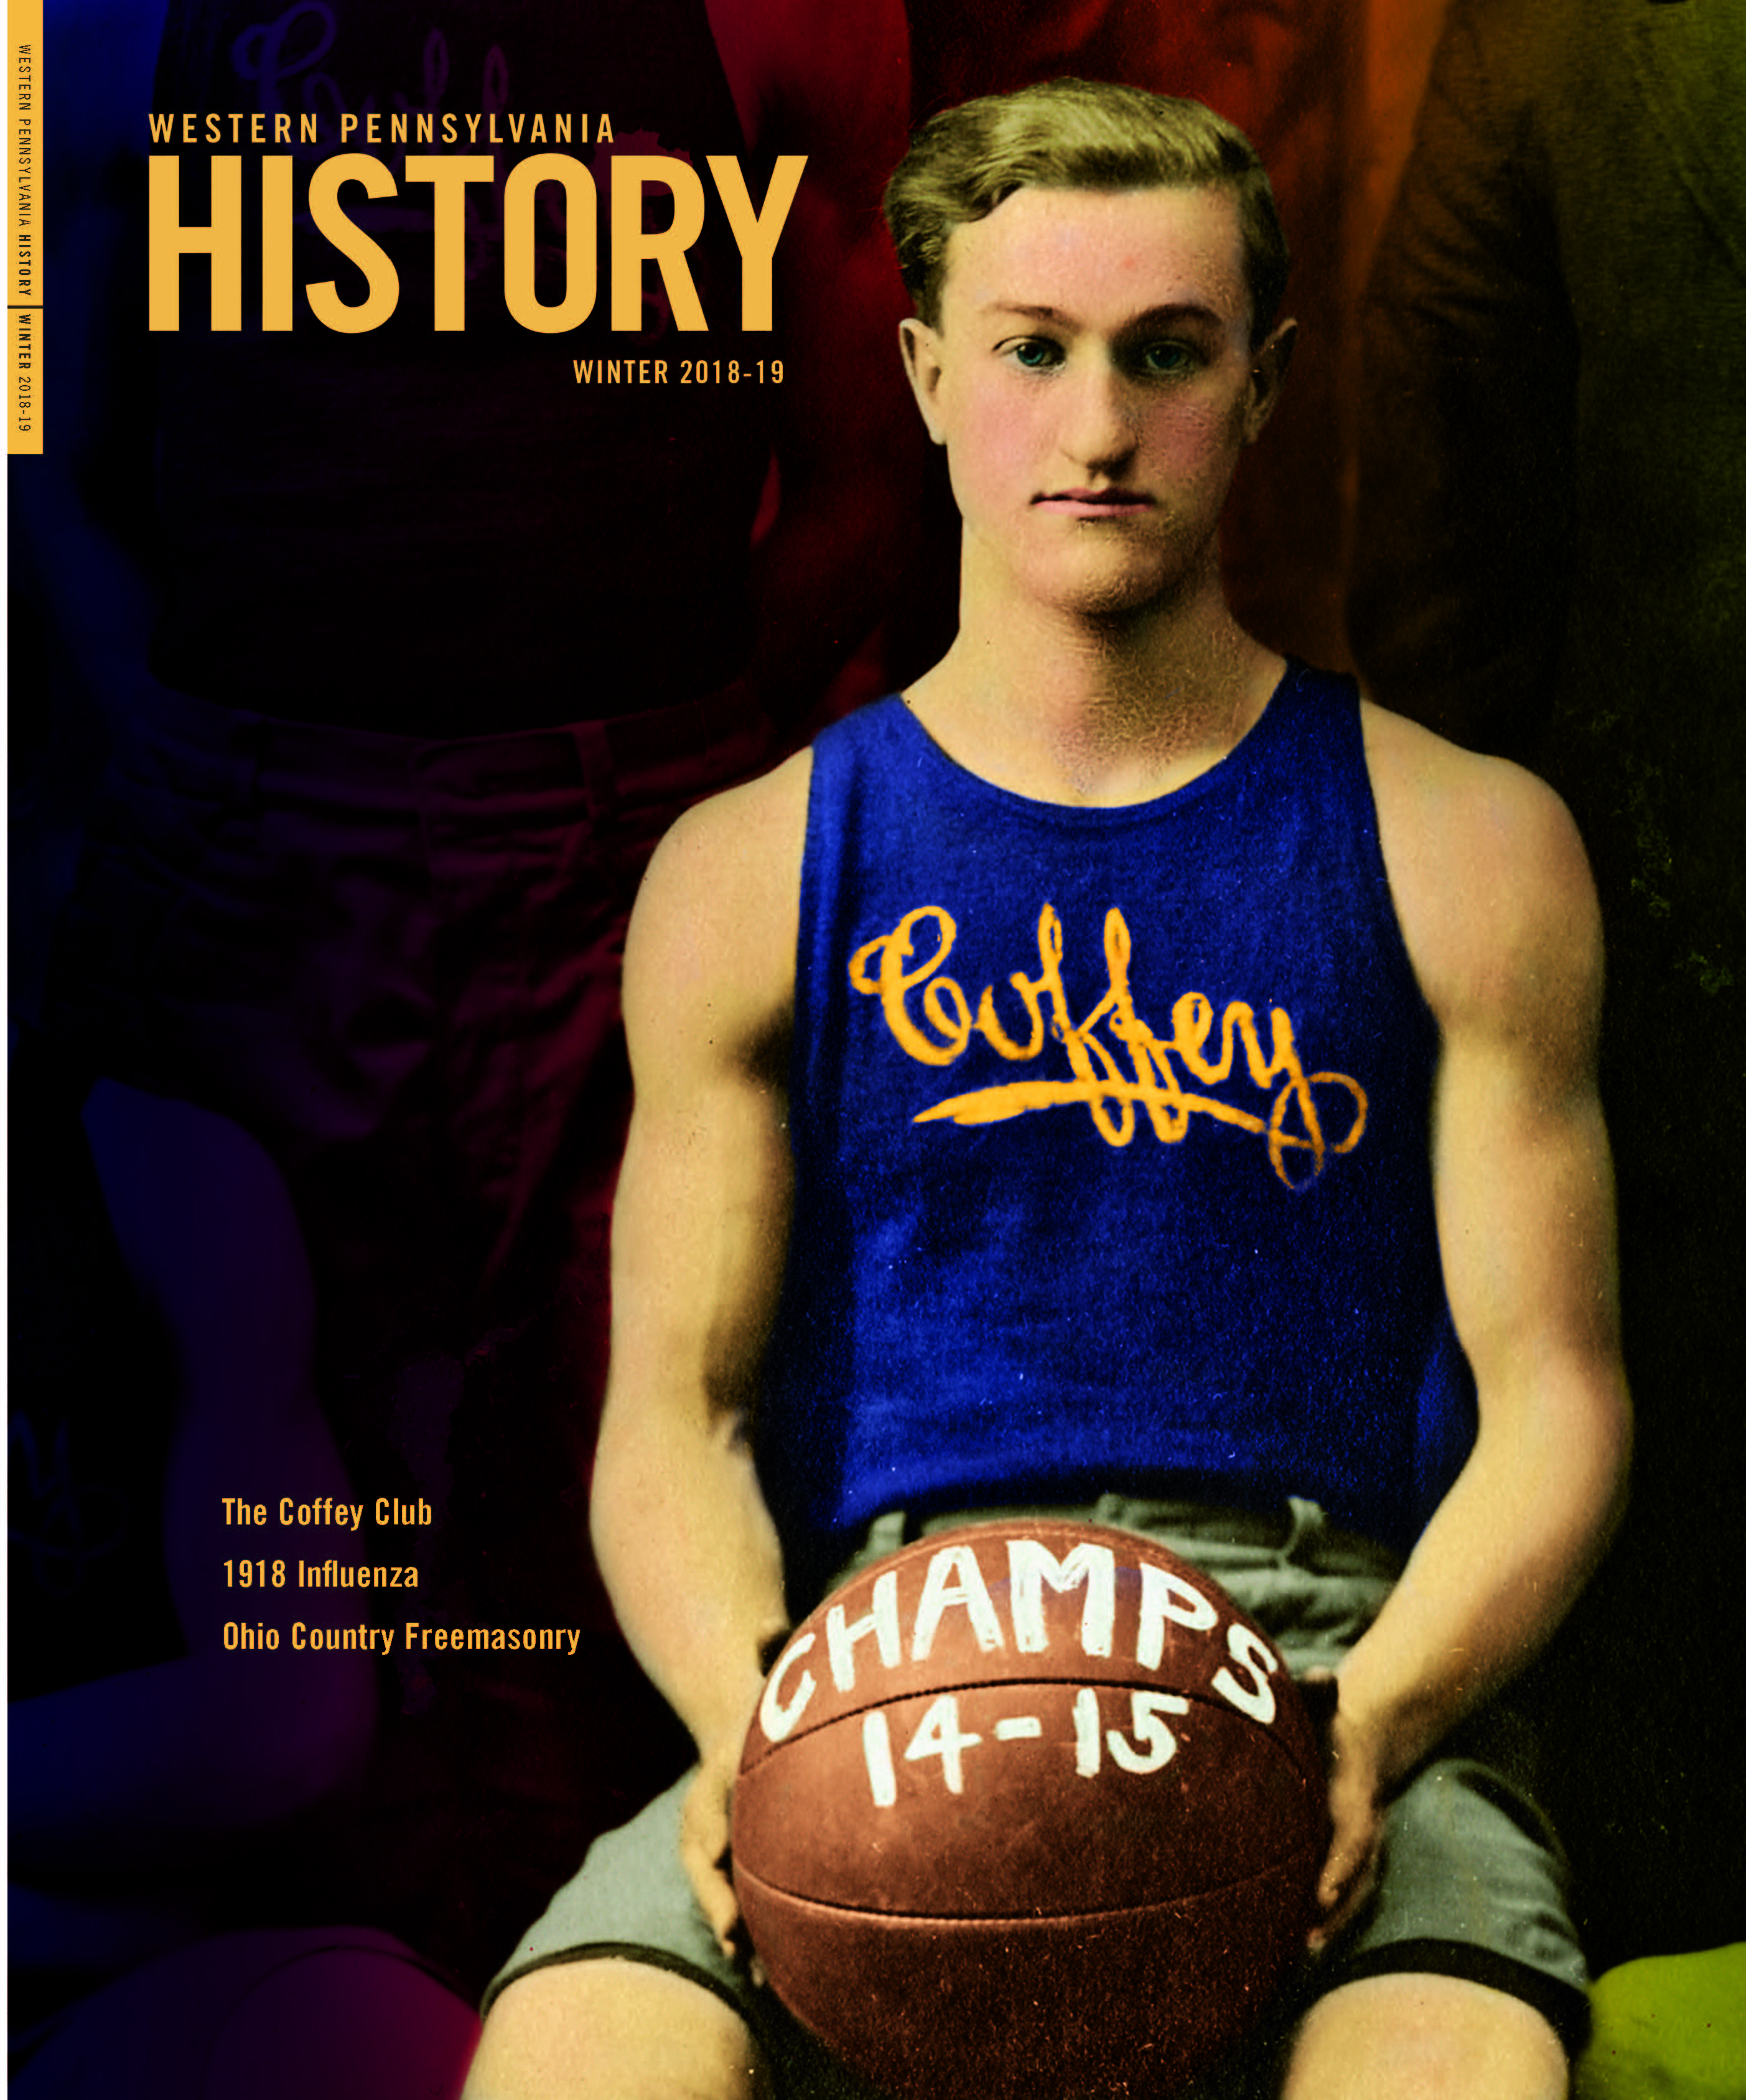 Western Pennsylvania History magazine cover Volume 101, Number 4, Winter 2018-2019 featuring an image of a football player with the name Coffey on his jersey, and a basketball that says Champs14-15